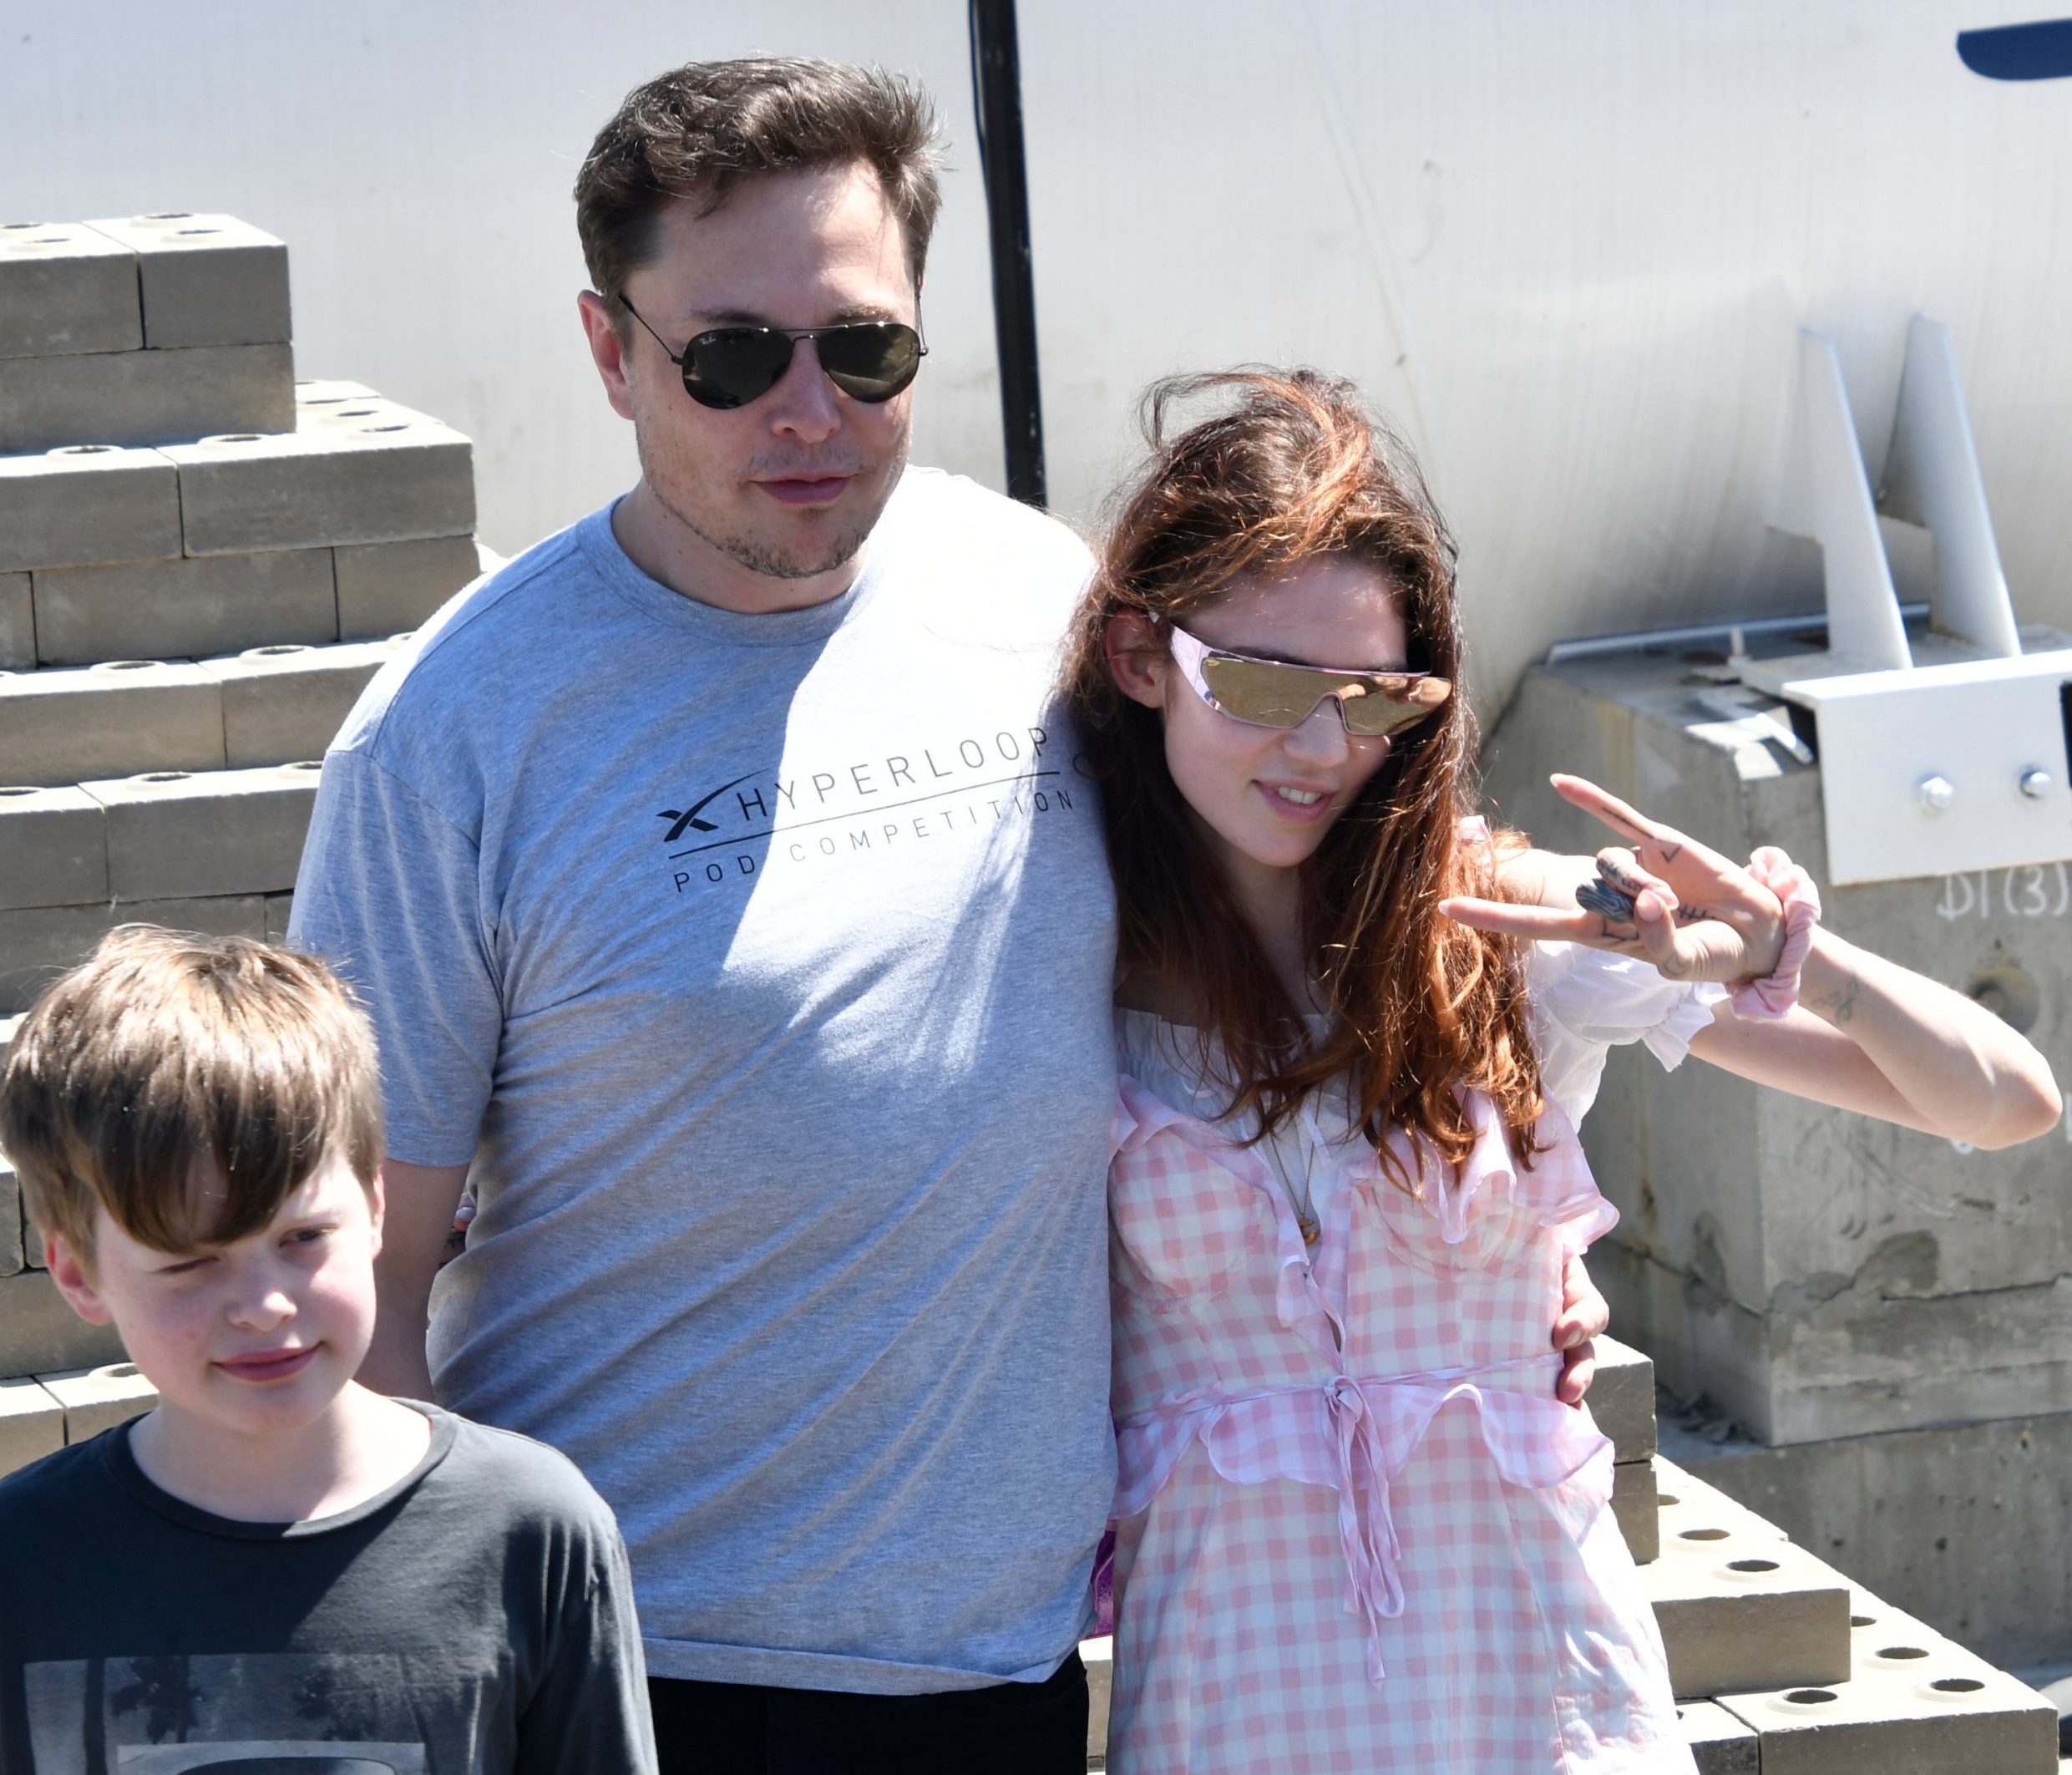 Mandatory Credit: Photo by Gene Blevins/ZUMA Wire/REX/Shutterstock (9767924j) SpaceX CEO Elon Musk with his new girlfriend singer Grimes pose together as the last of 4 teams of students comprised of over 600 competitors from more than 40 countries around the world compete in Hawthorne, California, to showcase their pods at SpaceX??s third Hyperloop Pod Competition Sunday. The winning team was WARR Hyperloop, as they hit speeds of 284 mph today. Hyperloop Pod Competition, Hawthorne, USA - 22 Jul 2018